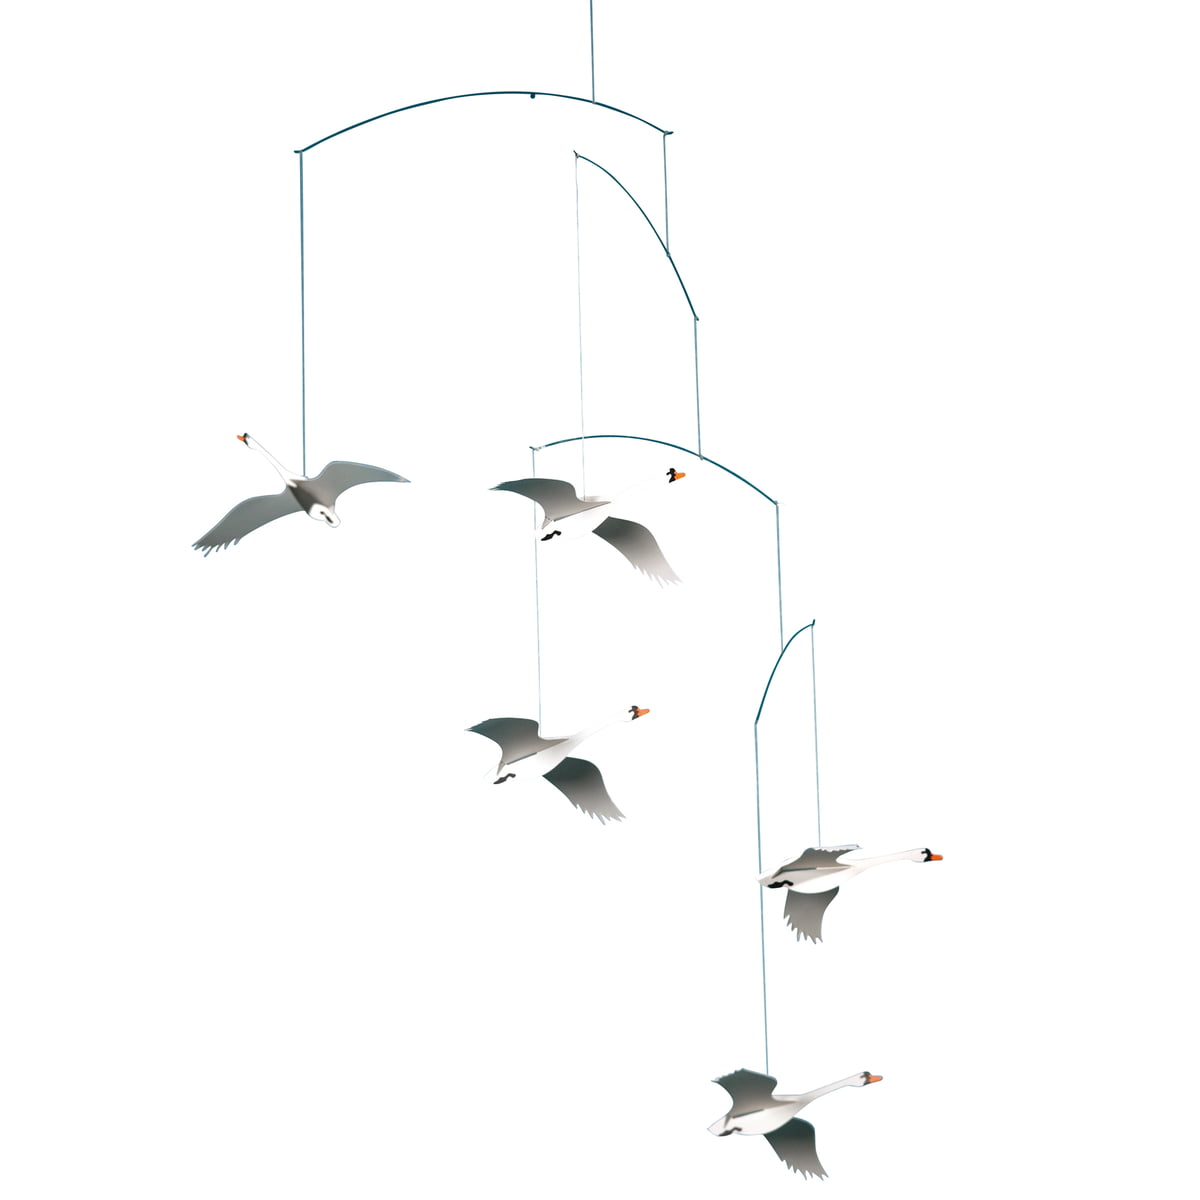 flensted mobiles scandinavian swans - flensted mobiles  scandinavian swans